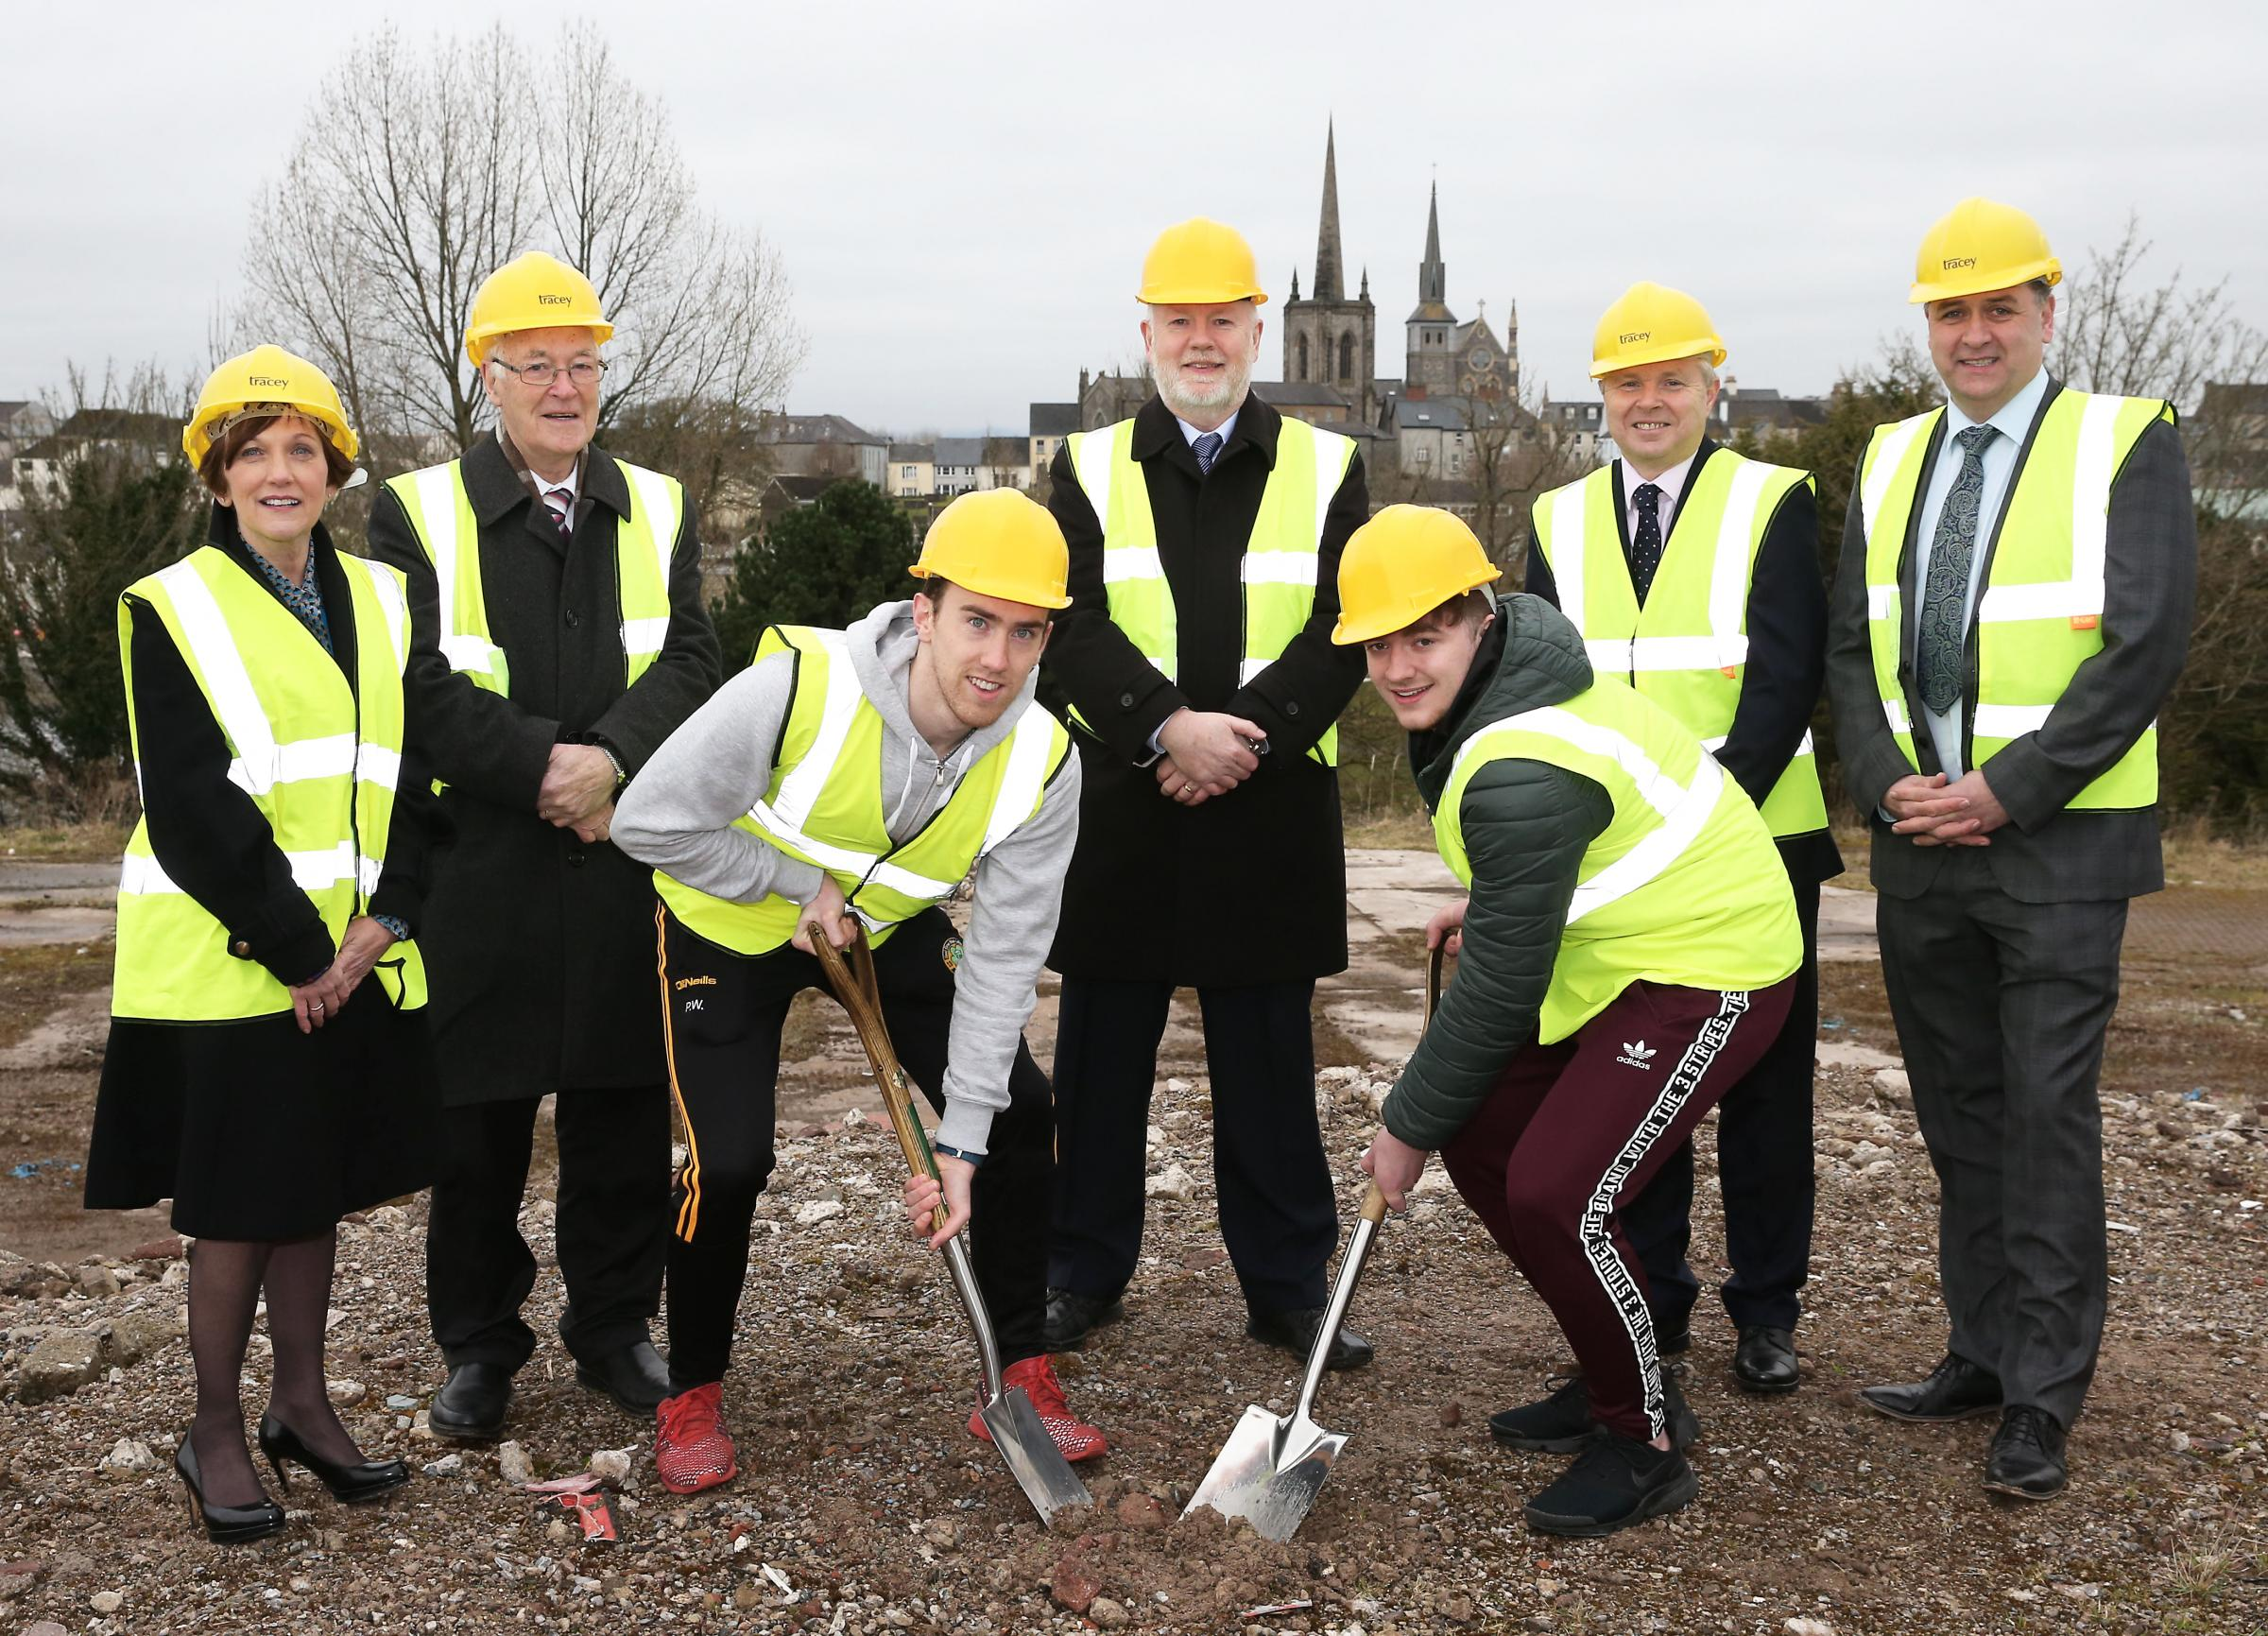 Celebrating cutting the first sod at South West College's new Erne Campus.